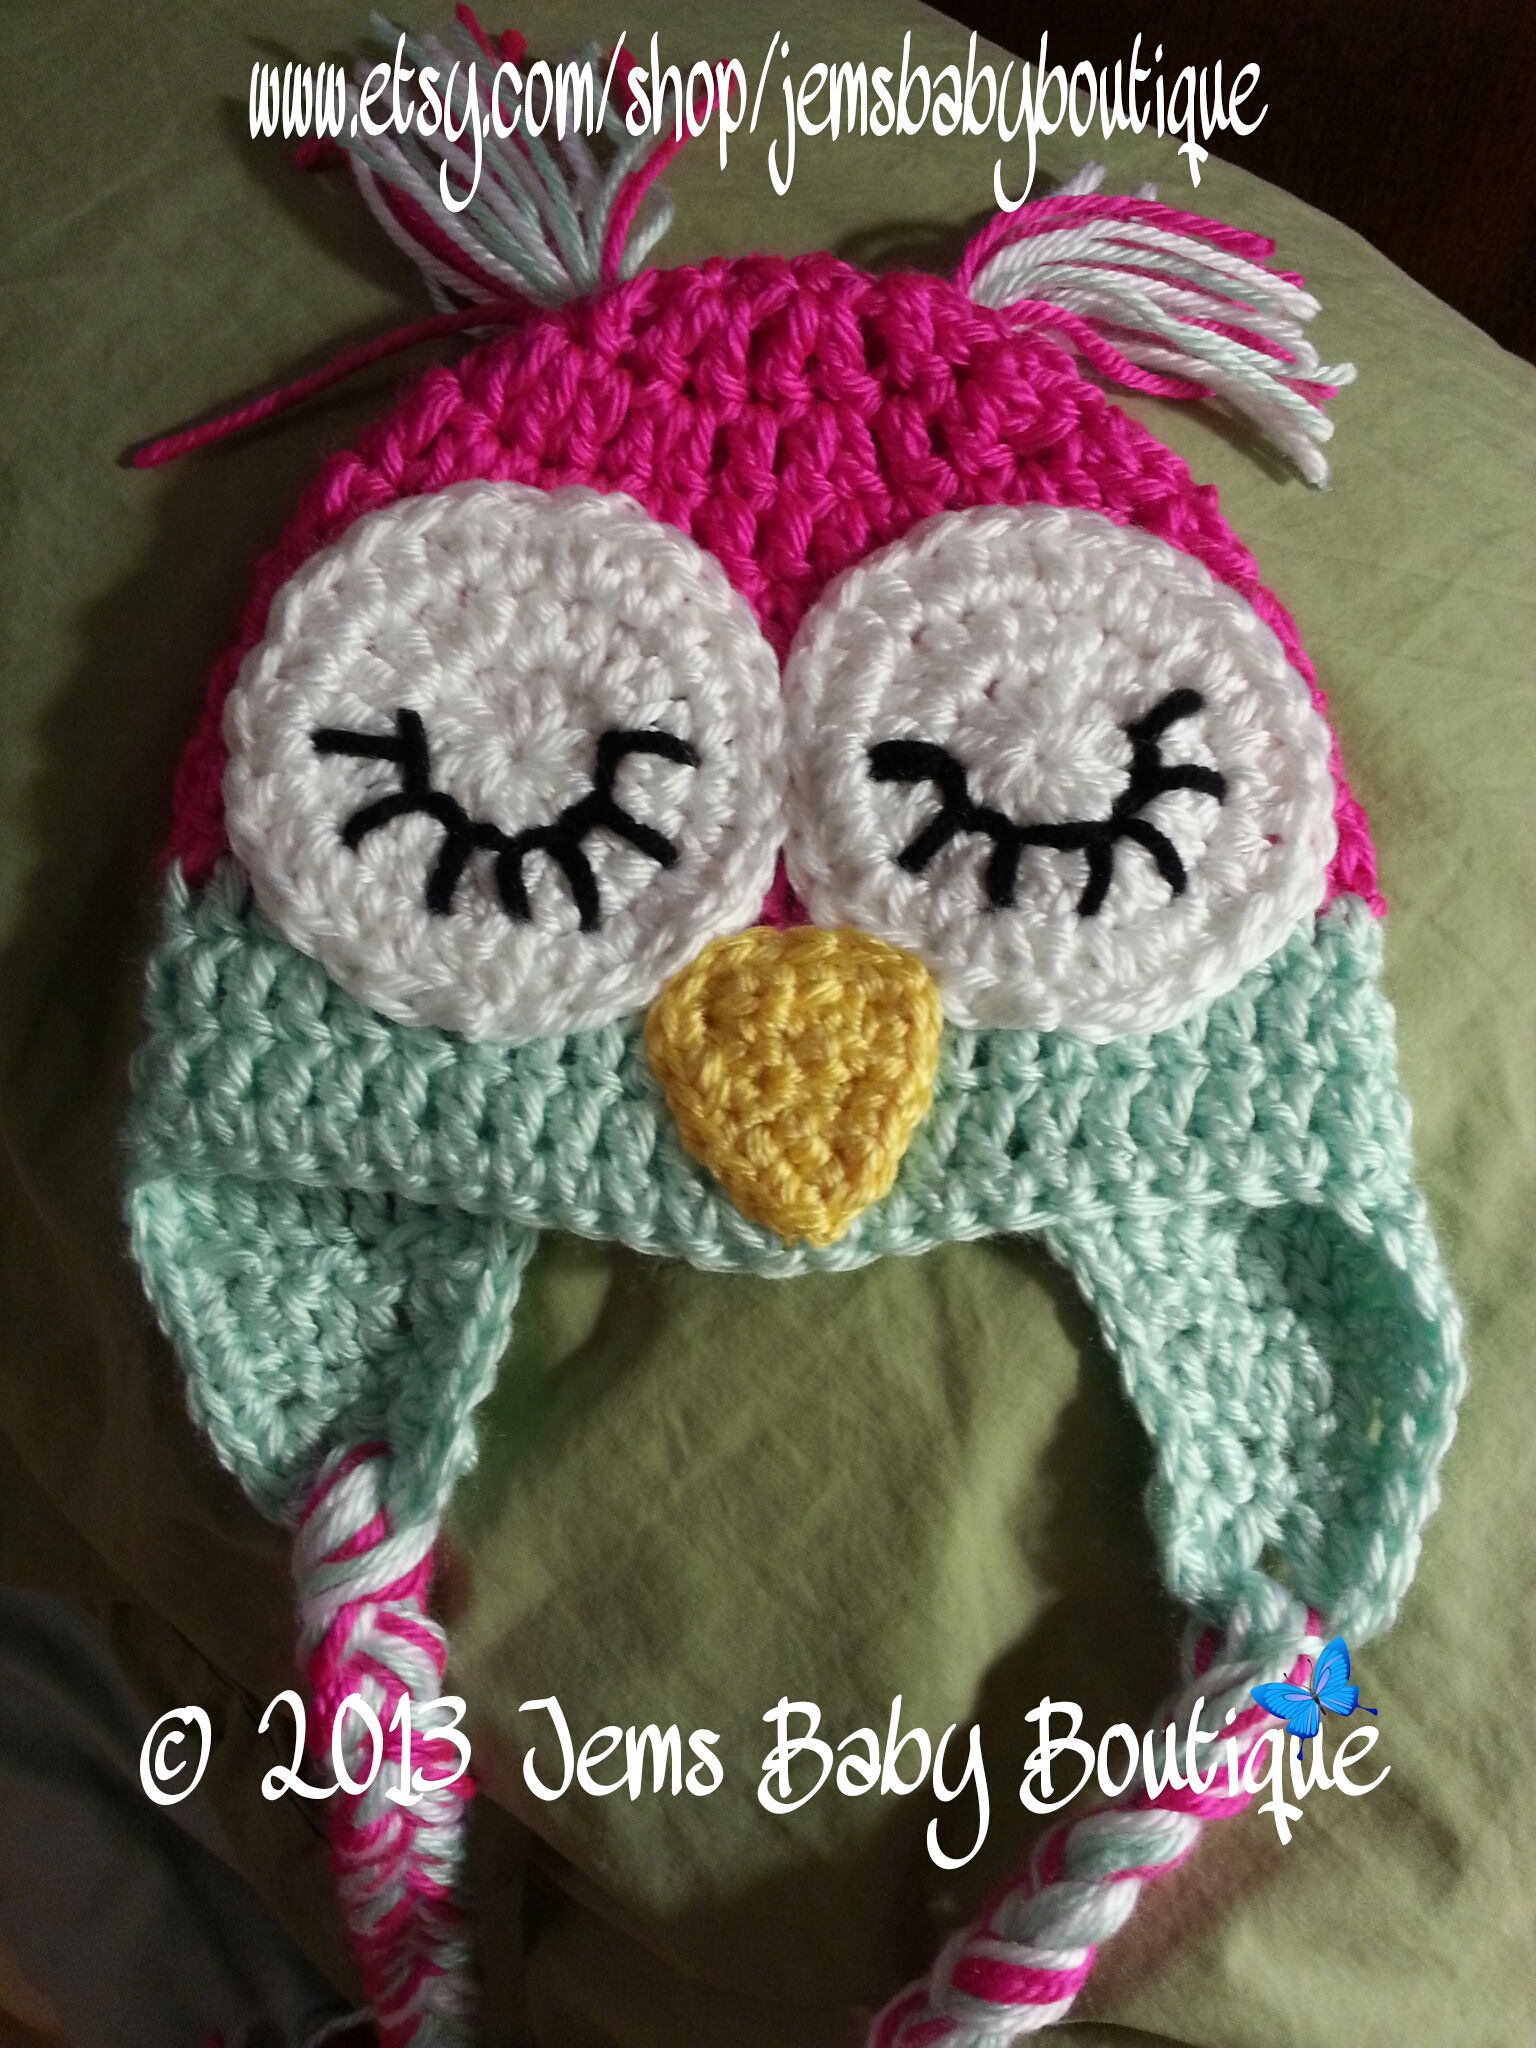 Crochet Sleepy Owl Hat W/ Earflaps And Pigtails 0-3 Months ...